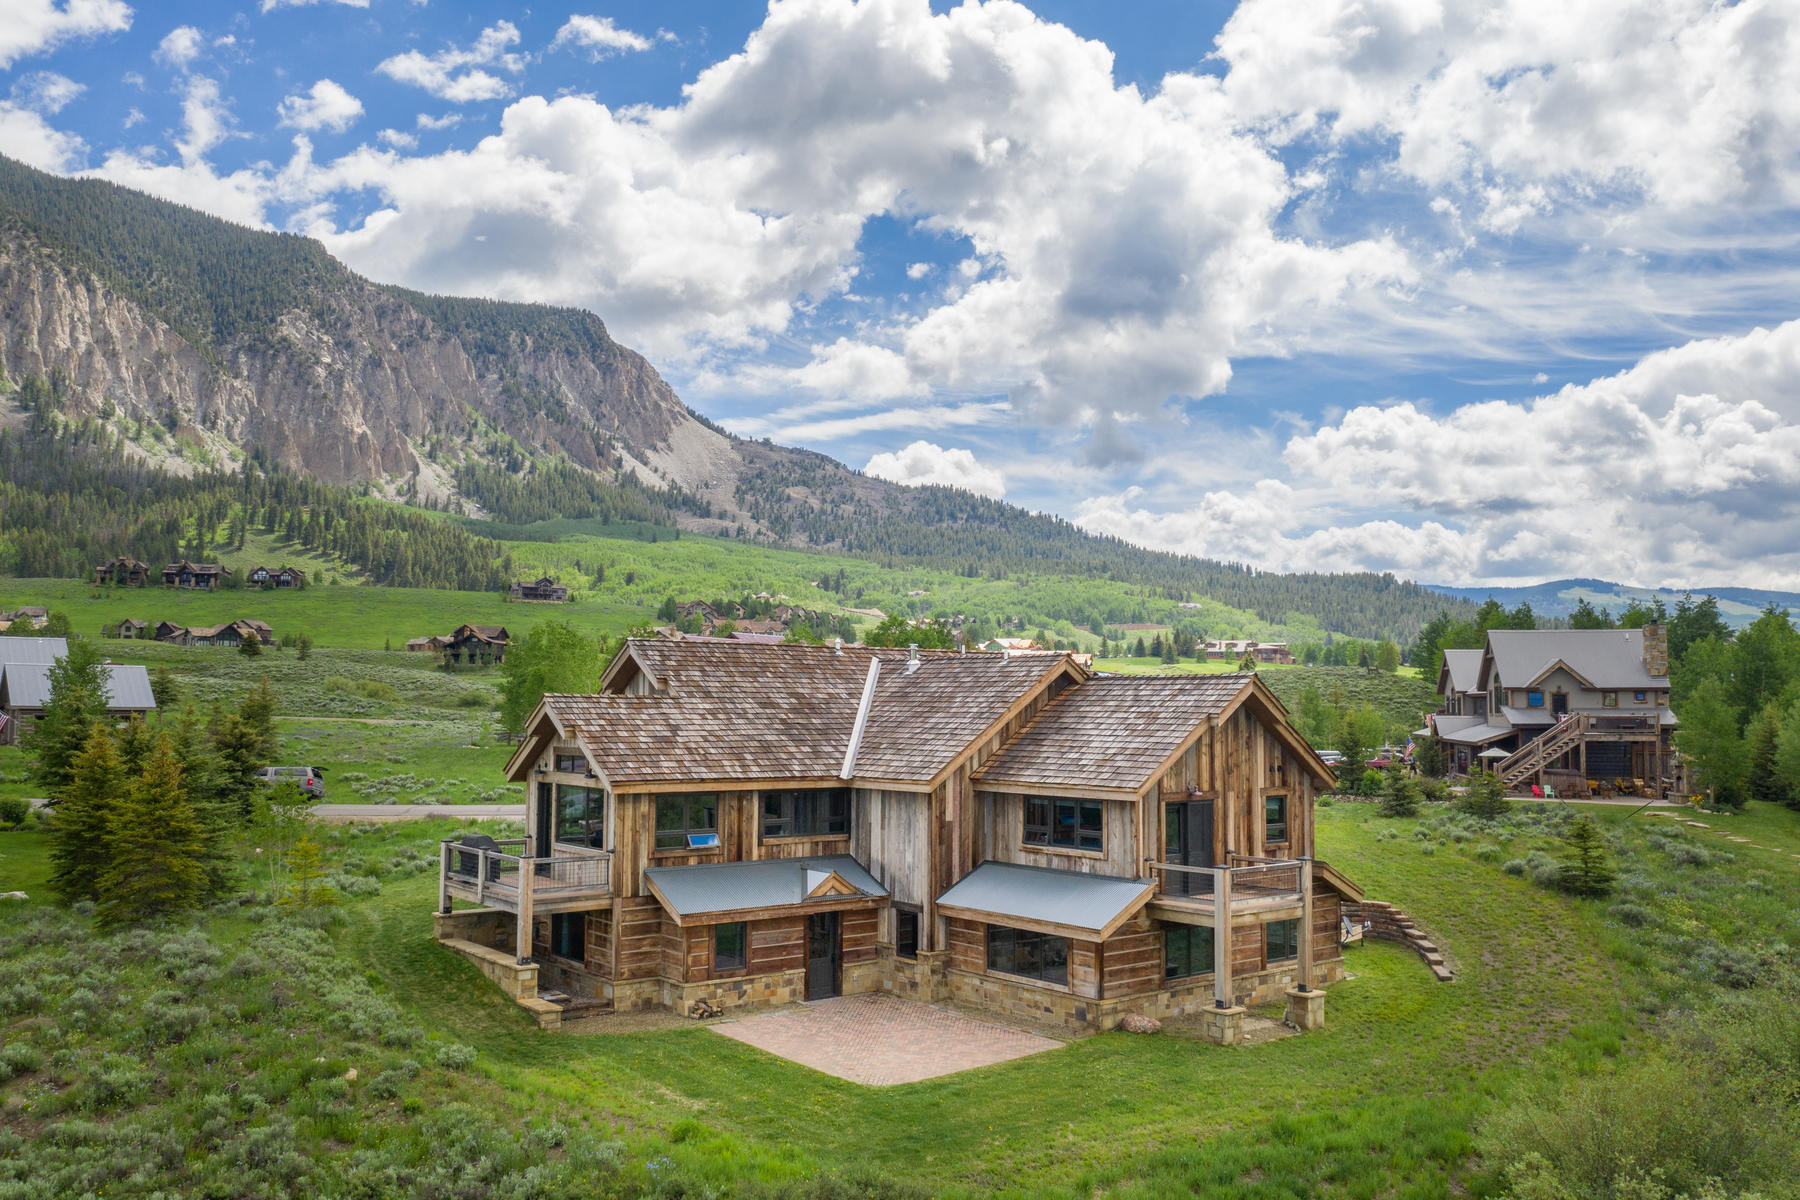 Single Family Homes for Sale at Unique, Handcrafted Home 45 W Silver Sage Drive Crested Butte, Colorado 81224 United States